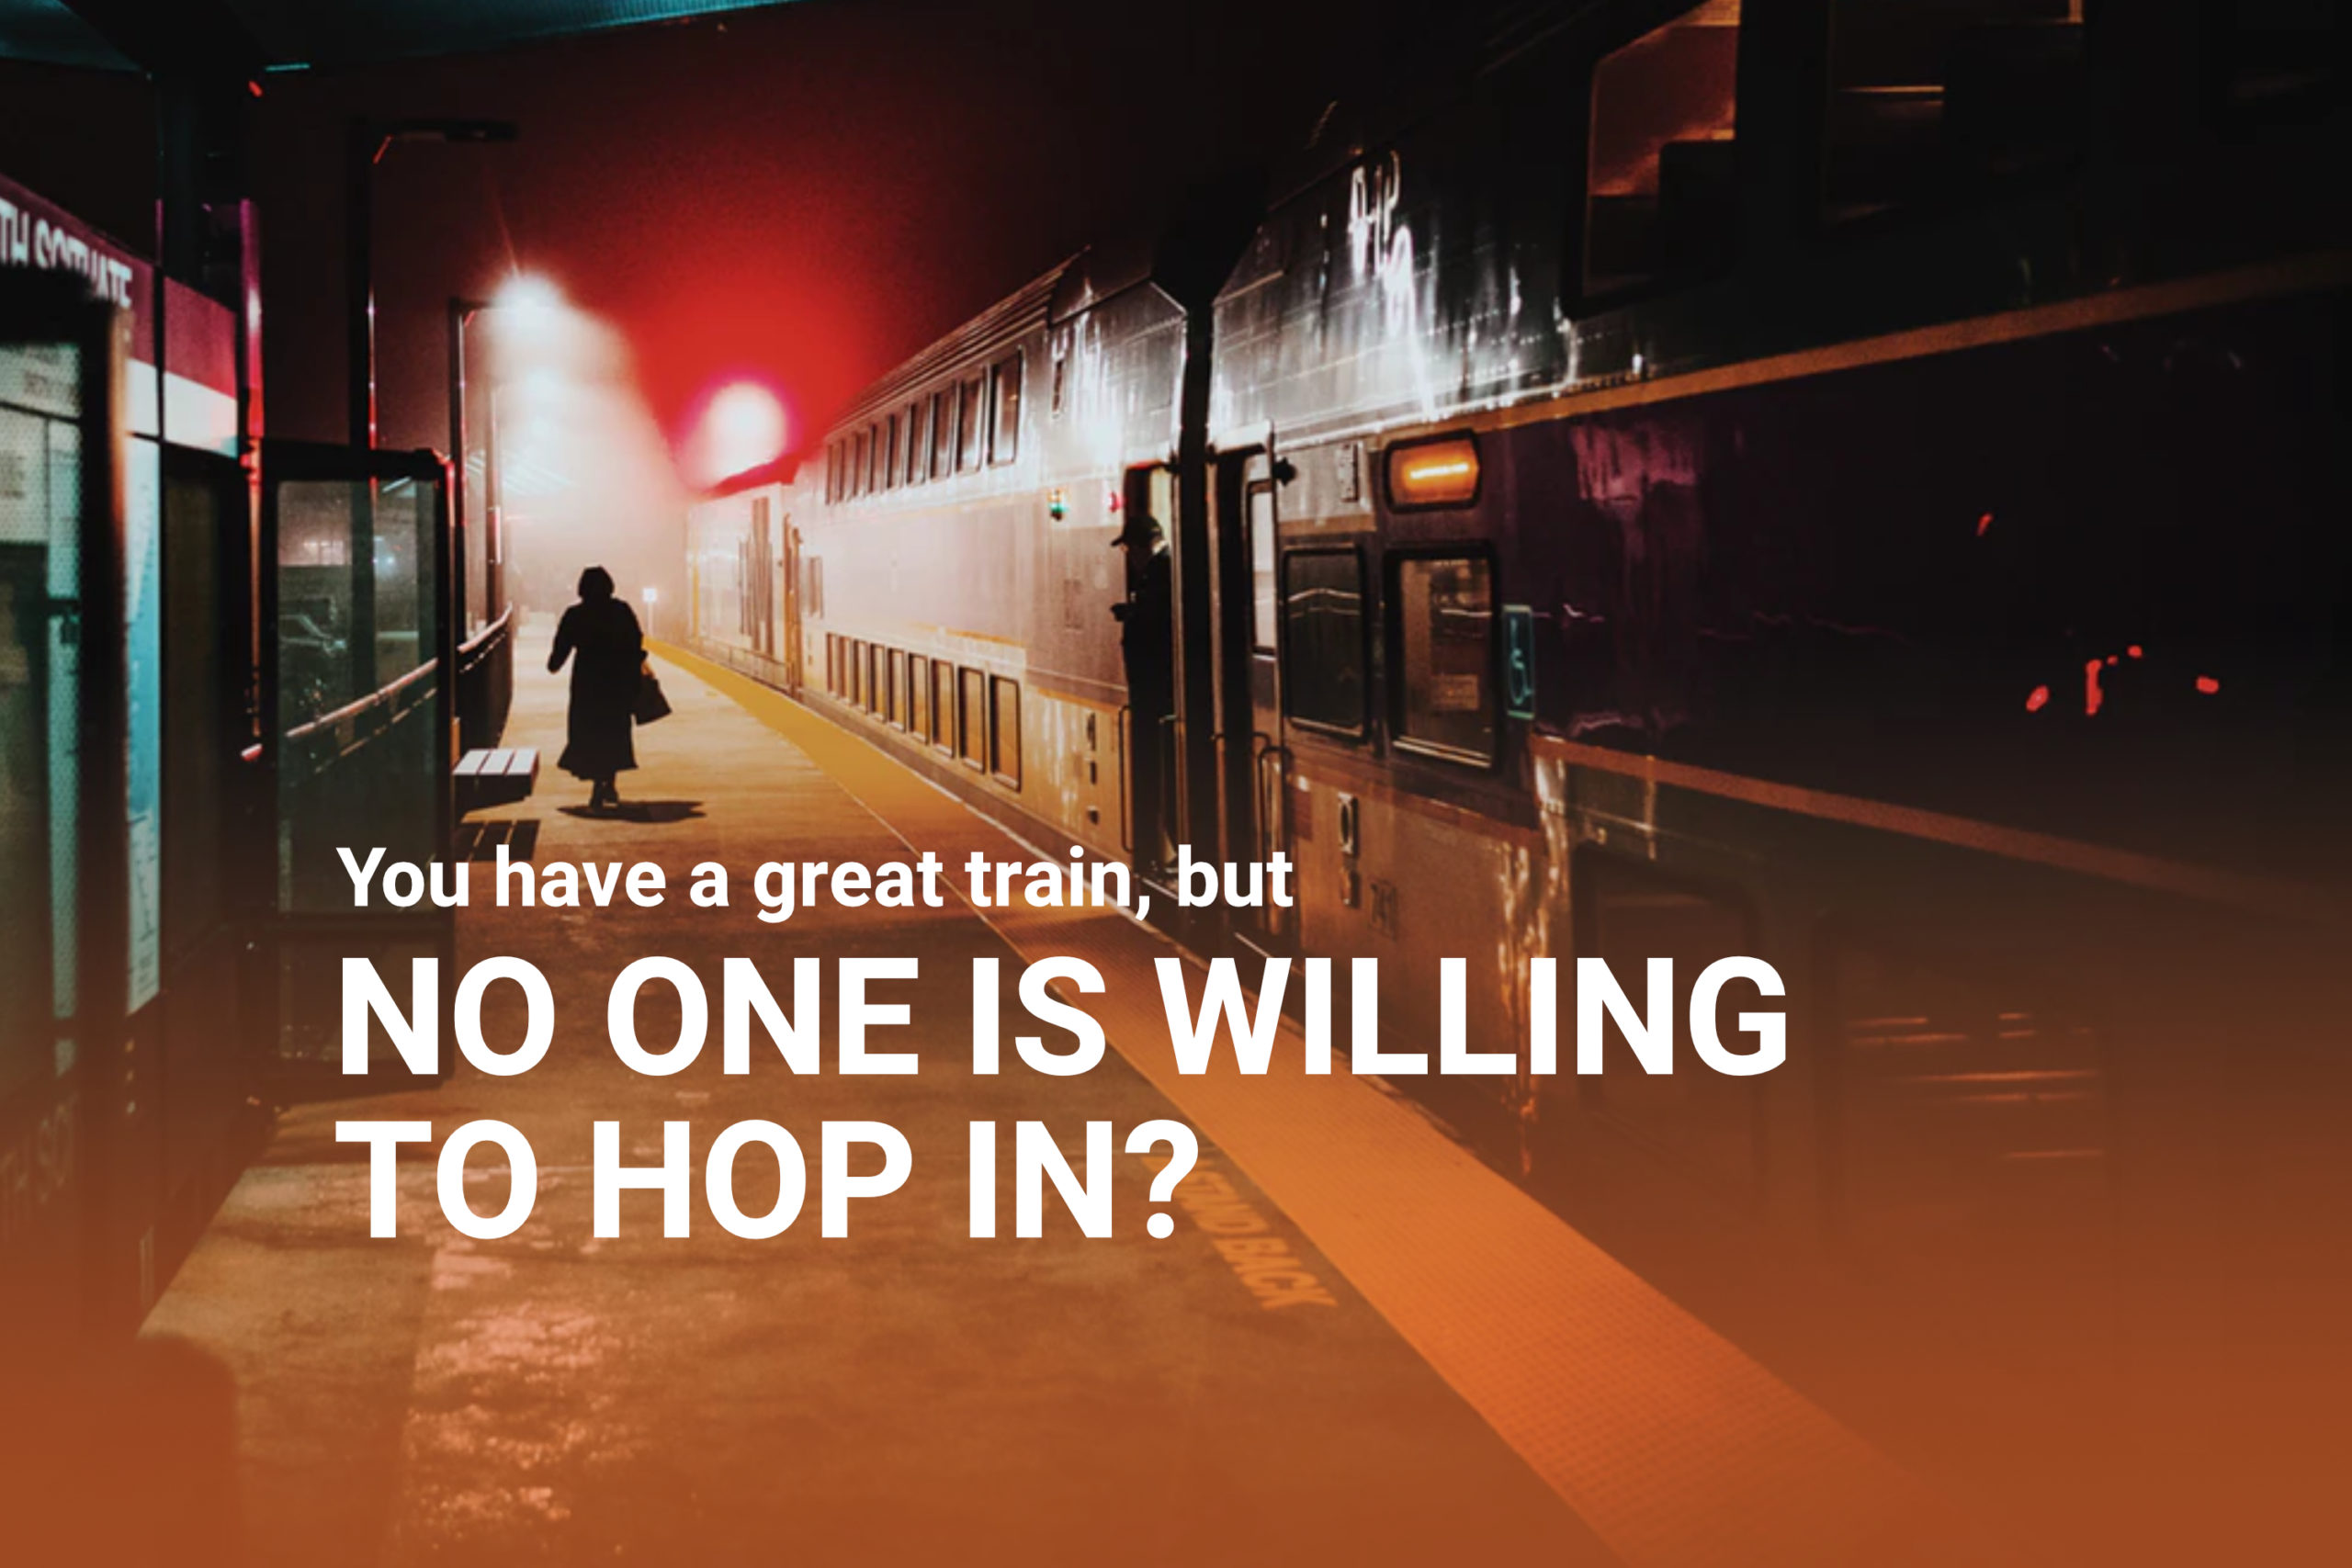 Article Image - You have a great train but no one is willing to hop in? How to influence people